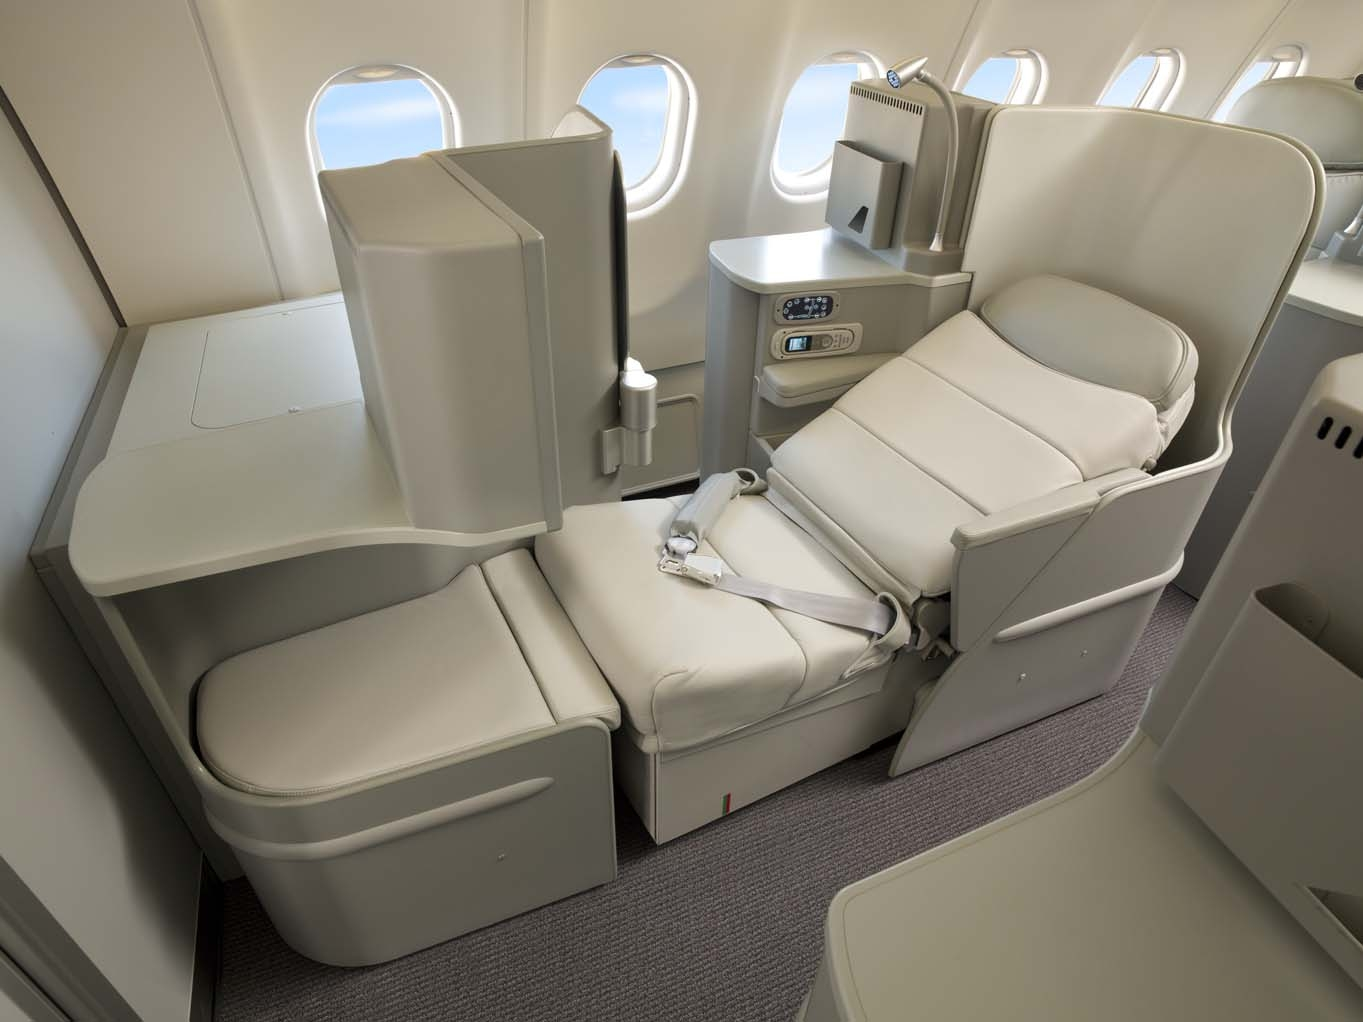 Best Business Class Seats for Couples - Alitalia Magnifica Business Class